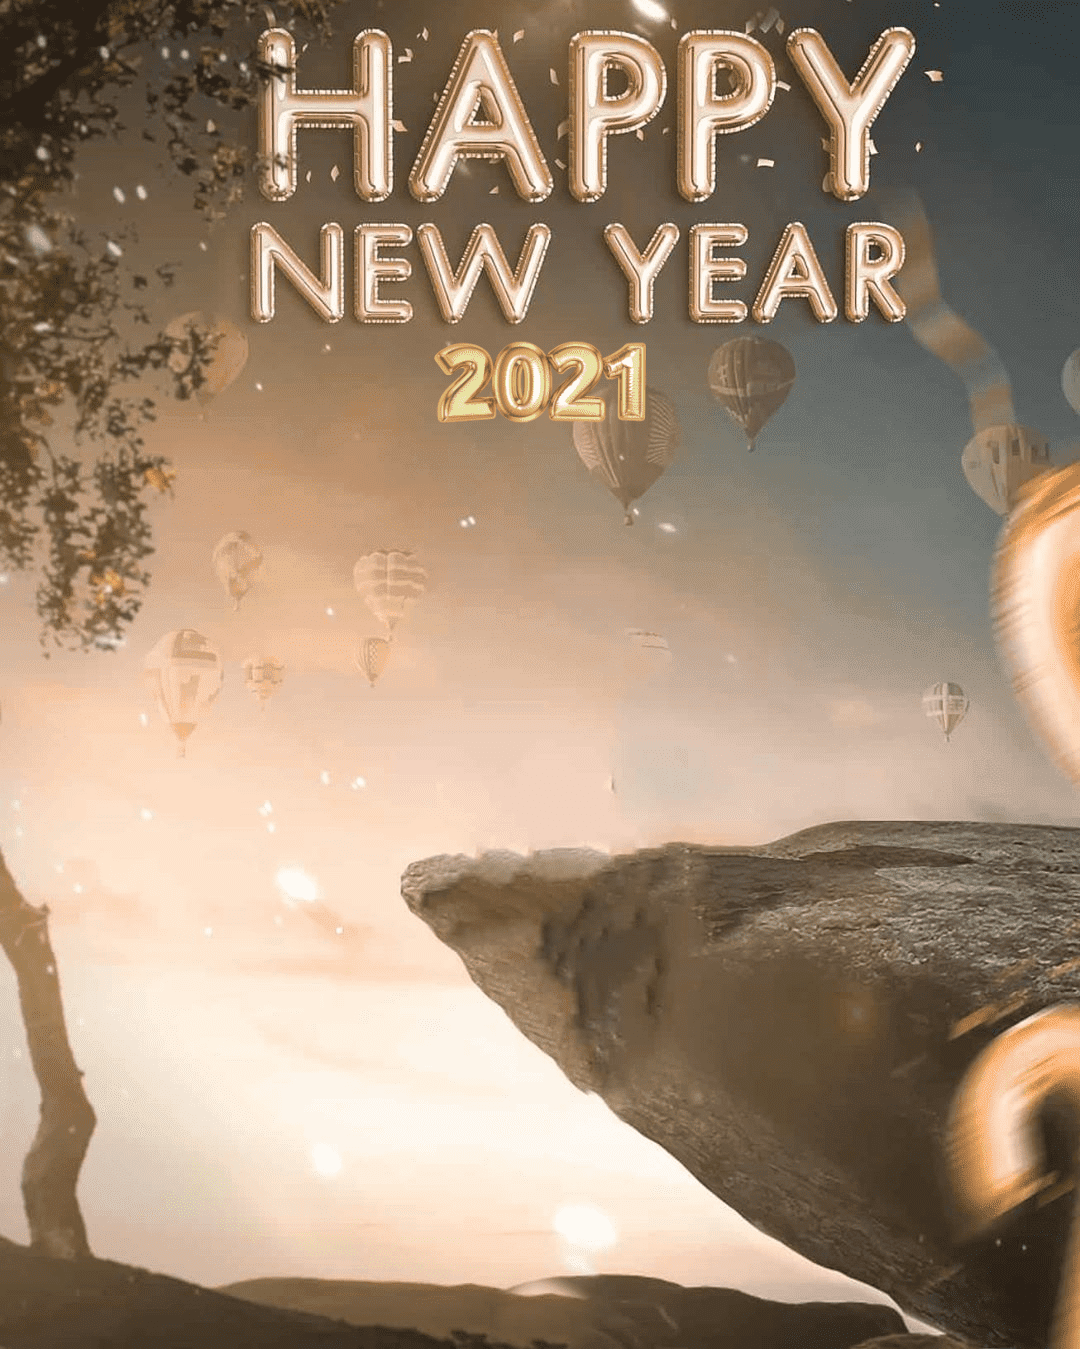 Happy New Year 2021 Background 2021 Background For Editing Learningwithsr Picsart's background changer offers a huge library of thematic backgrounds, such as special holiday themes, seasonal backgrounds, and even more playful themes, like fruity backgrounds, flowers, hearts, etc. happy new year 2021 background 2021